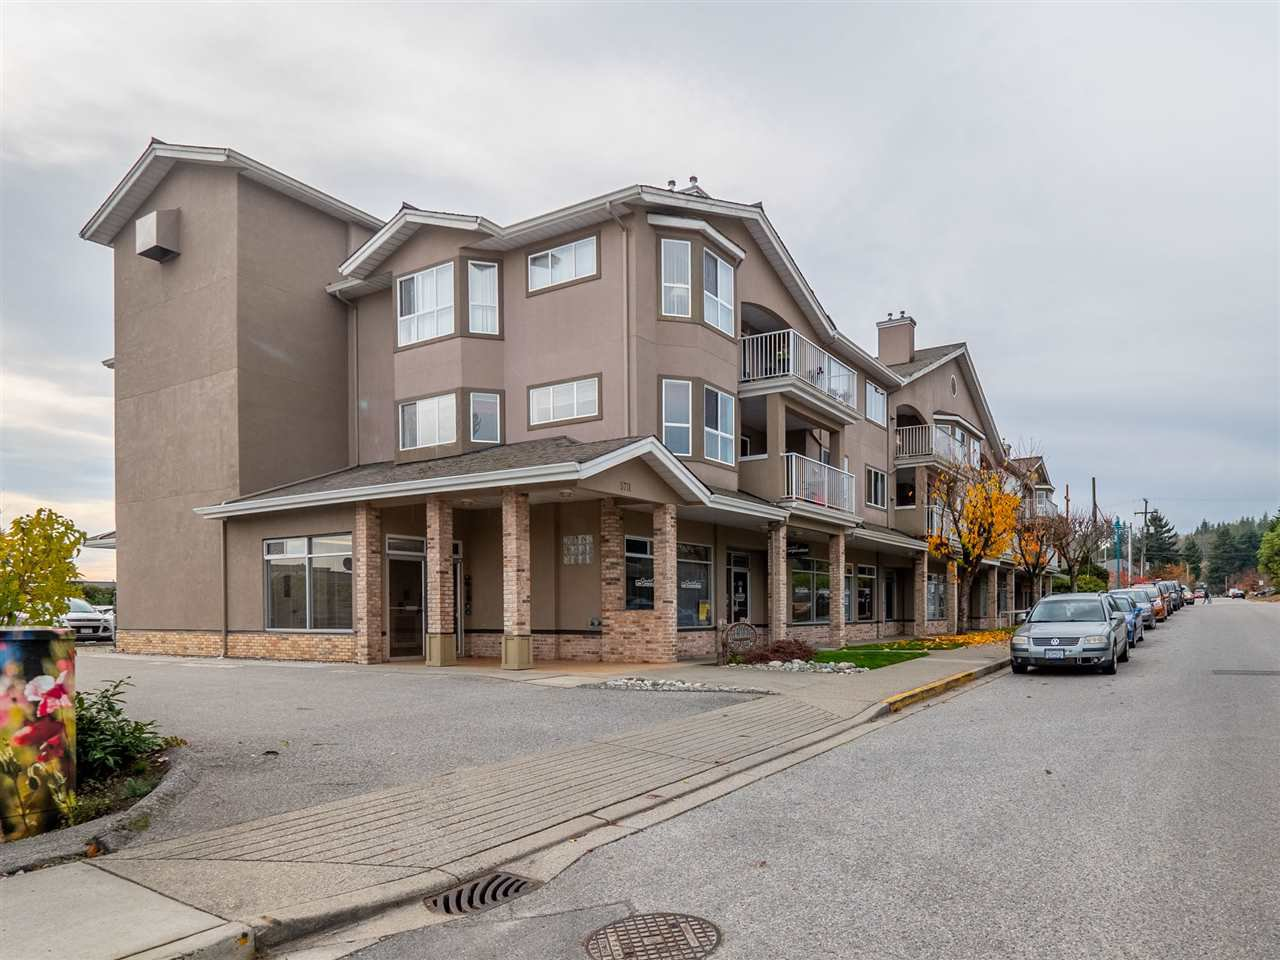 Photo 19: Photos: 206 5711 MERMAID Street in Sechelt: Sechelt District Condo for sale (Sunshine Coast)  : MLS®# R2419059